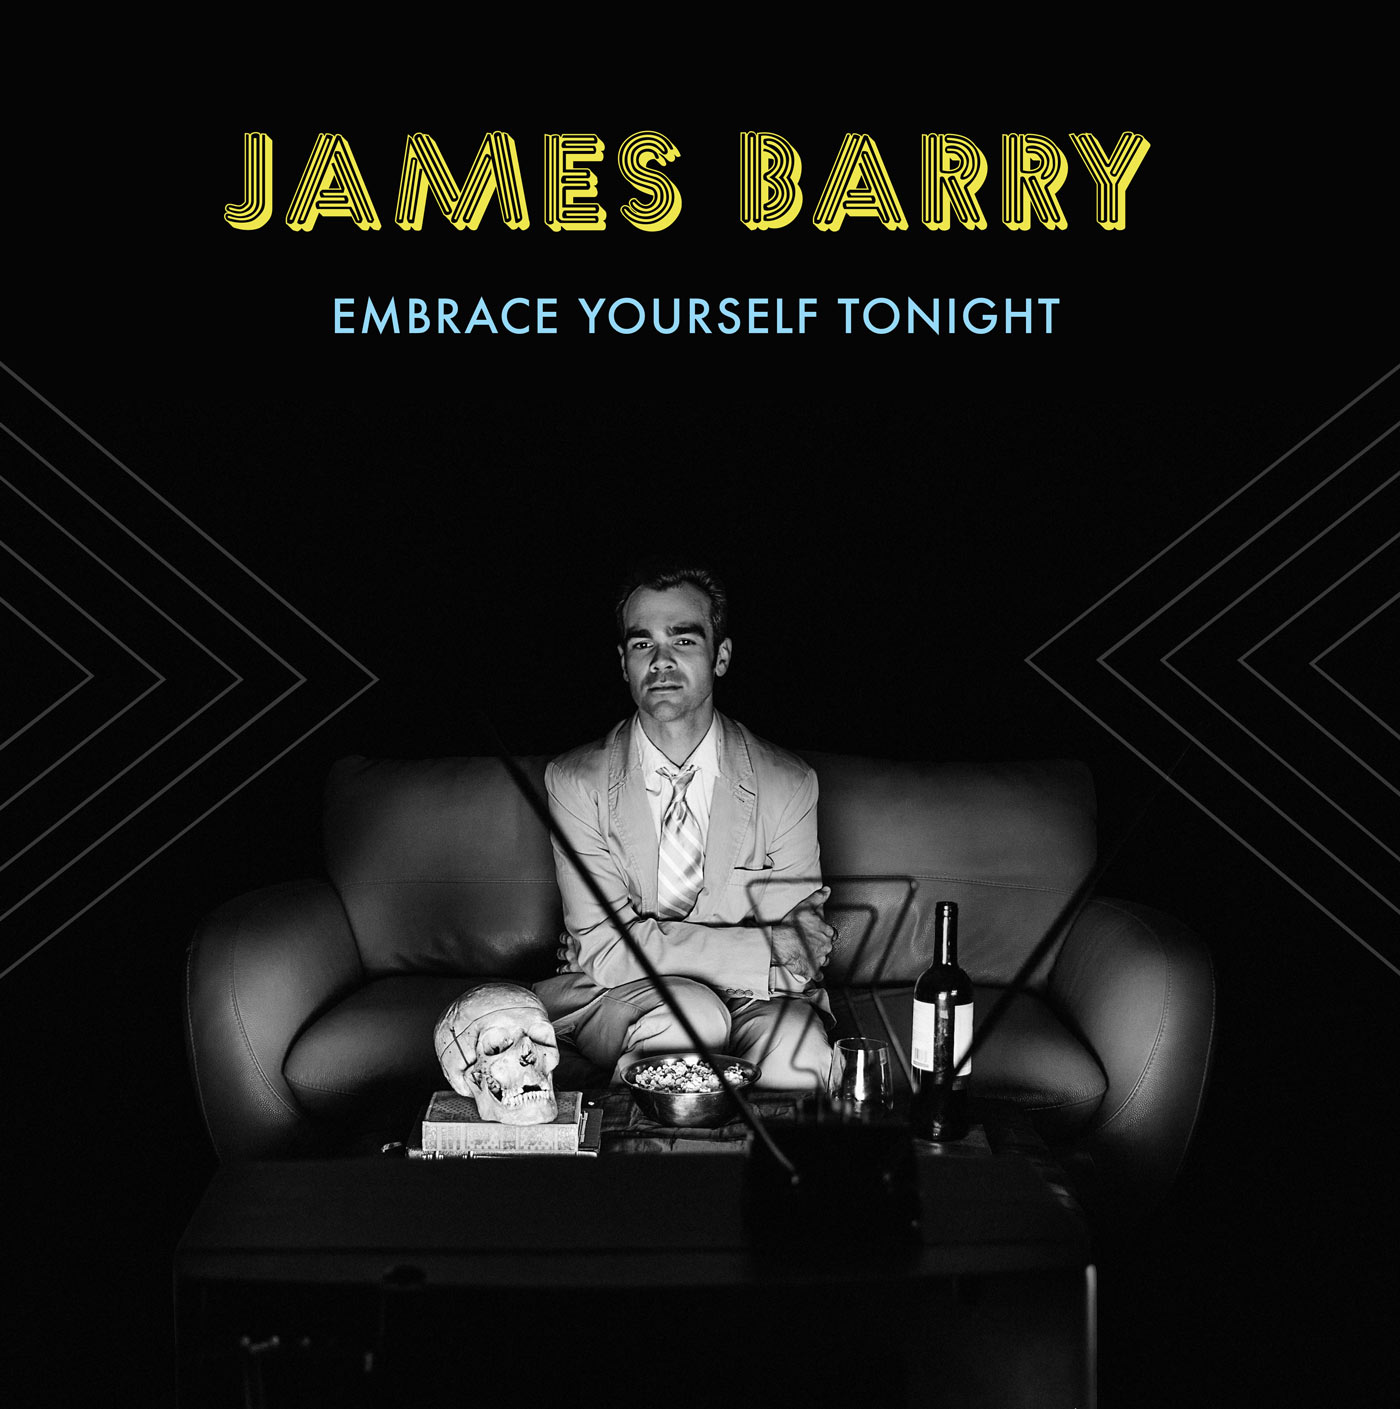 James Barry – Embrace Yourself Tonight – Record Sleeve Design thumbnail